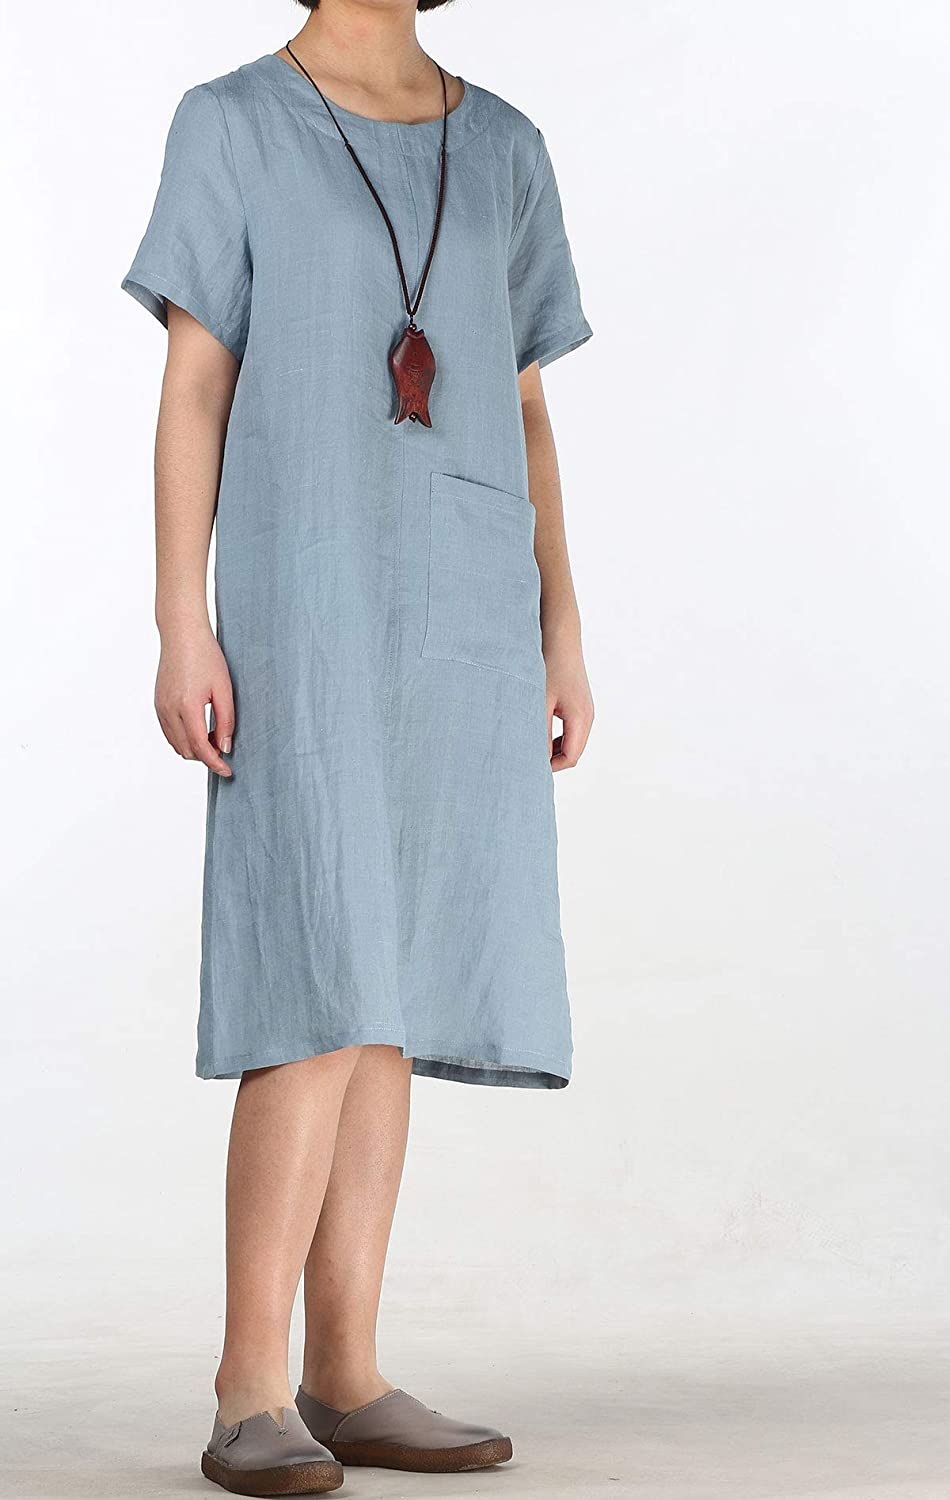 1920s Downton Abbey Dresses Mordenmiss Womens Linen Dresses Simple Short Sleeve T-Shirt Tunic Dress $29.99 AT vintagedancer.com